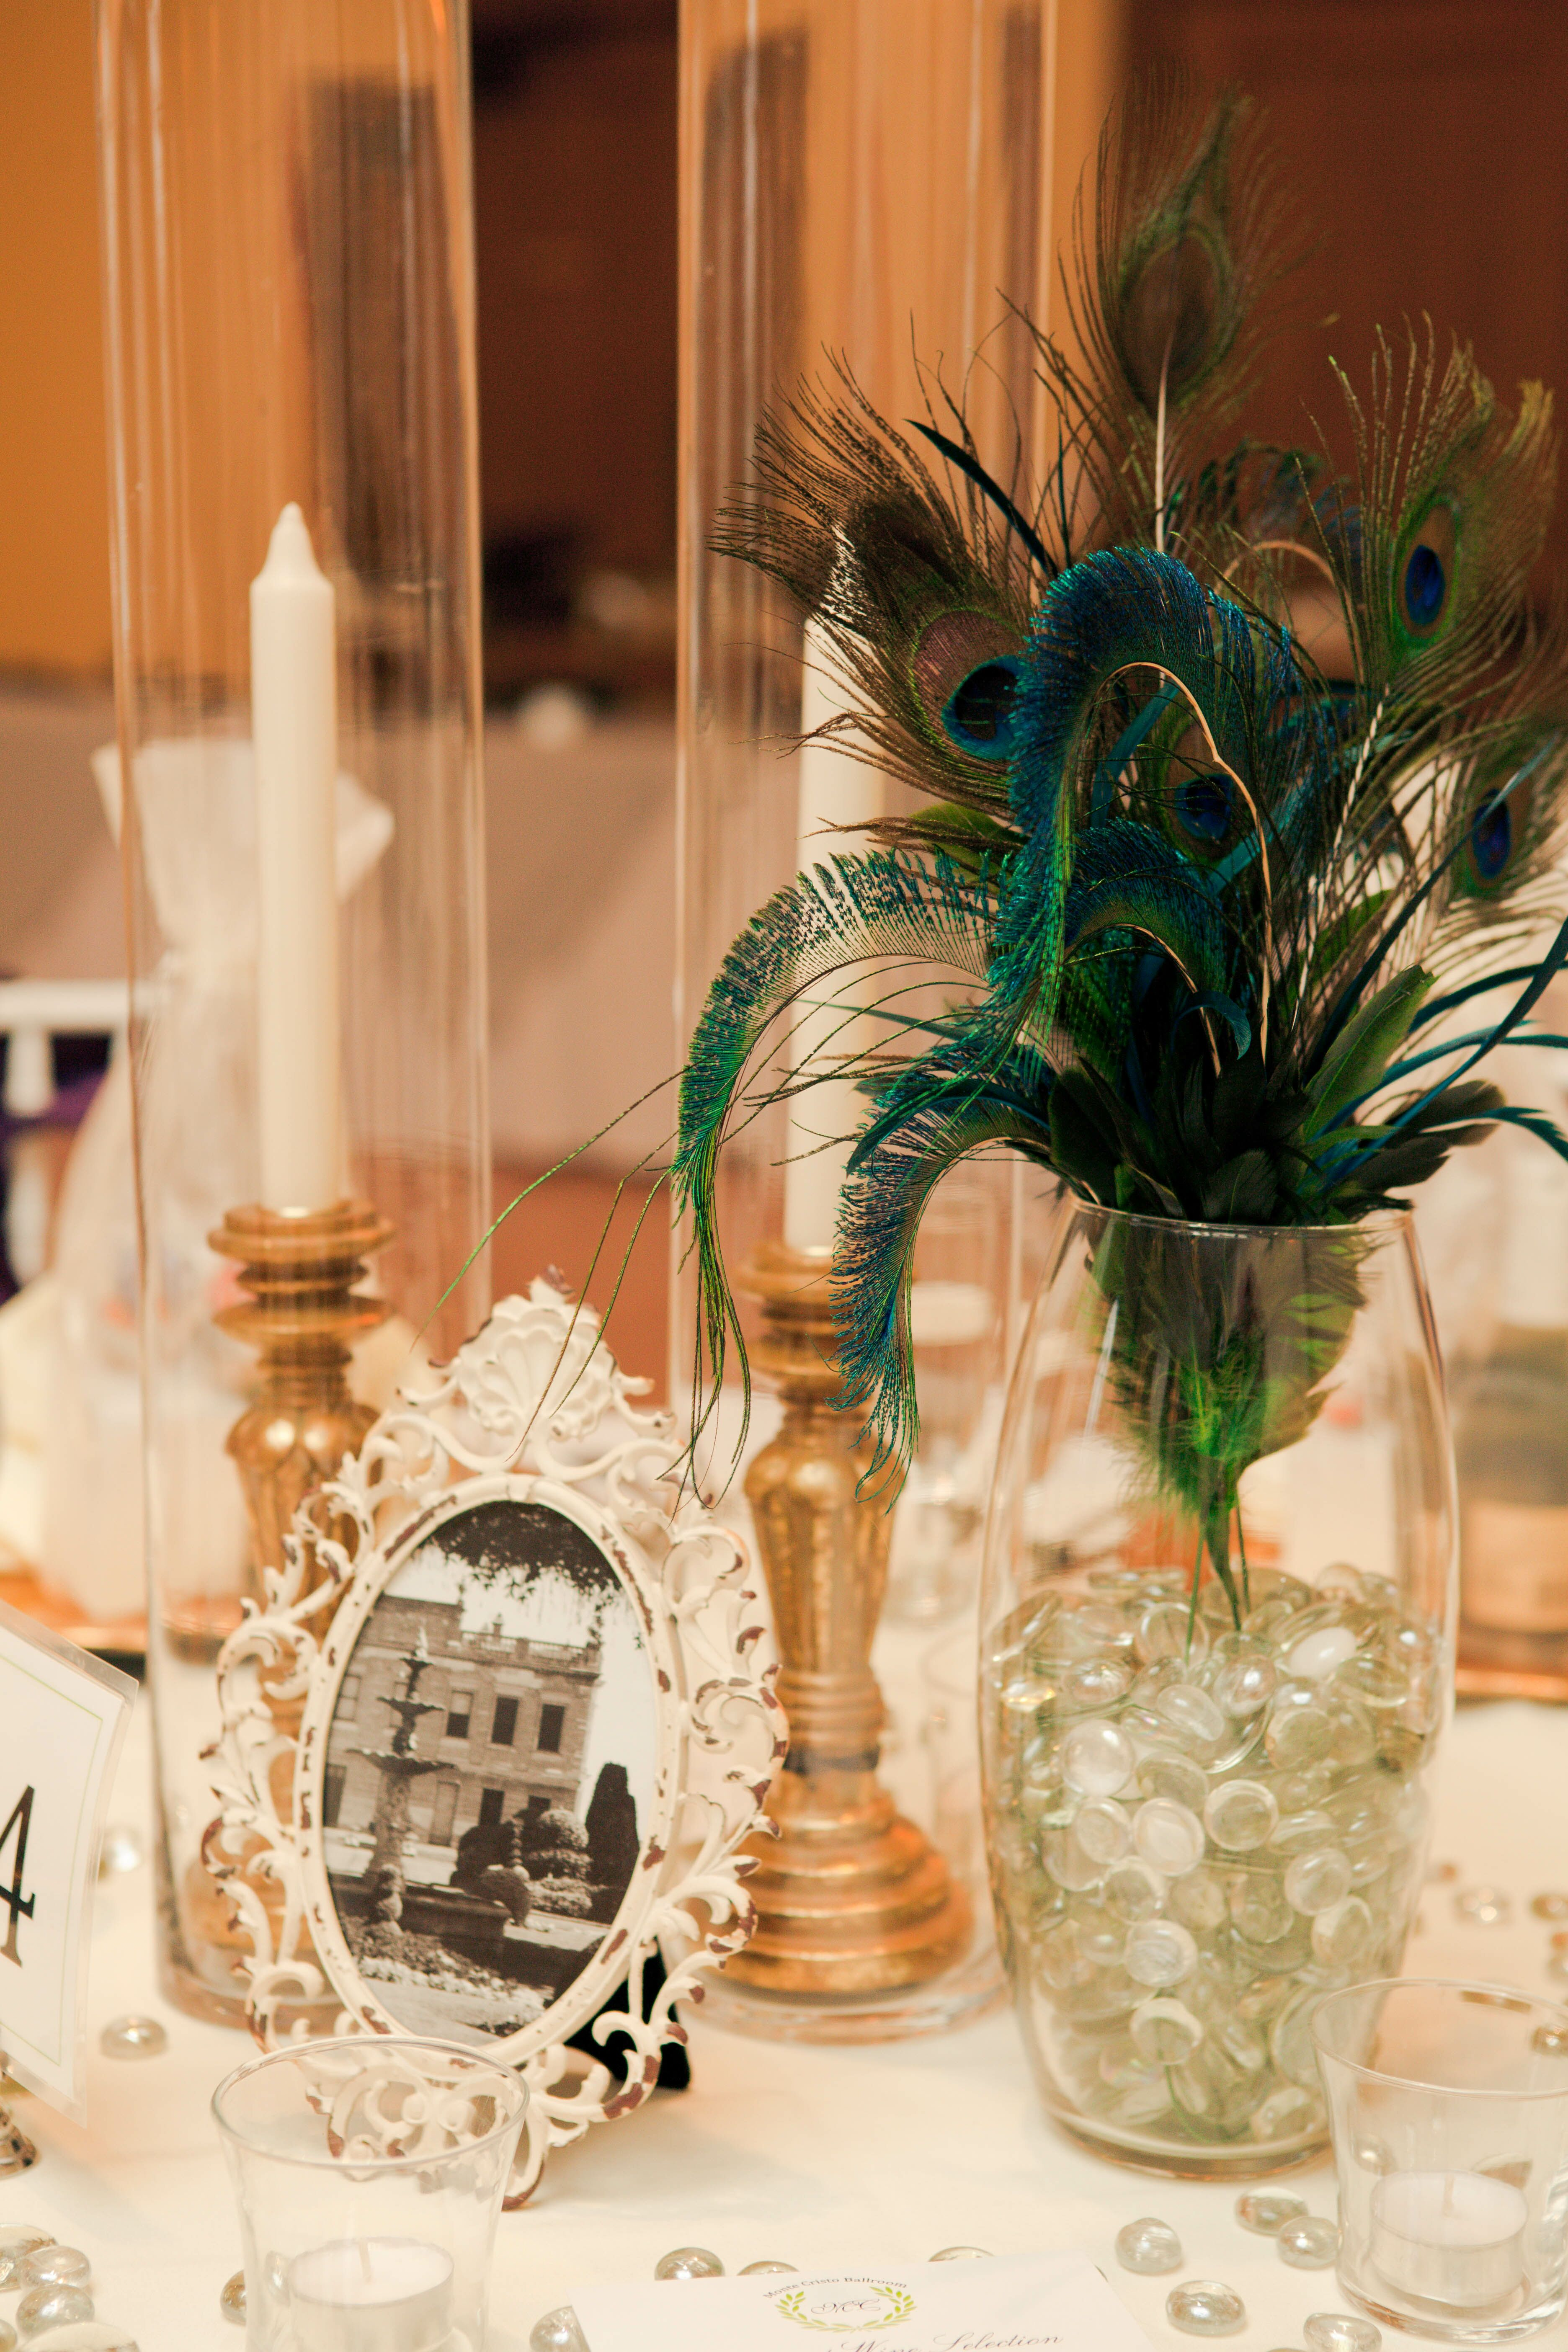 peacock feather centerpiece and candles